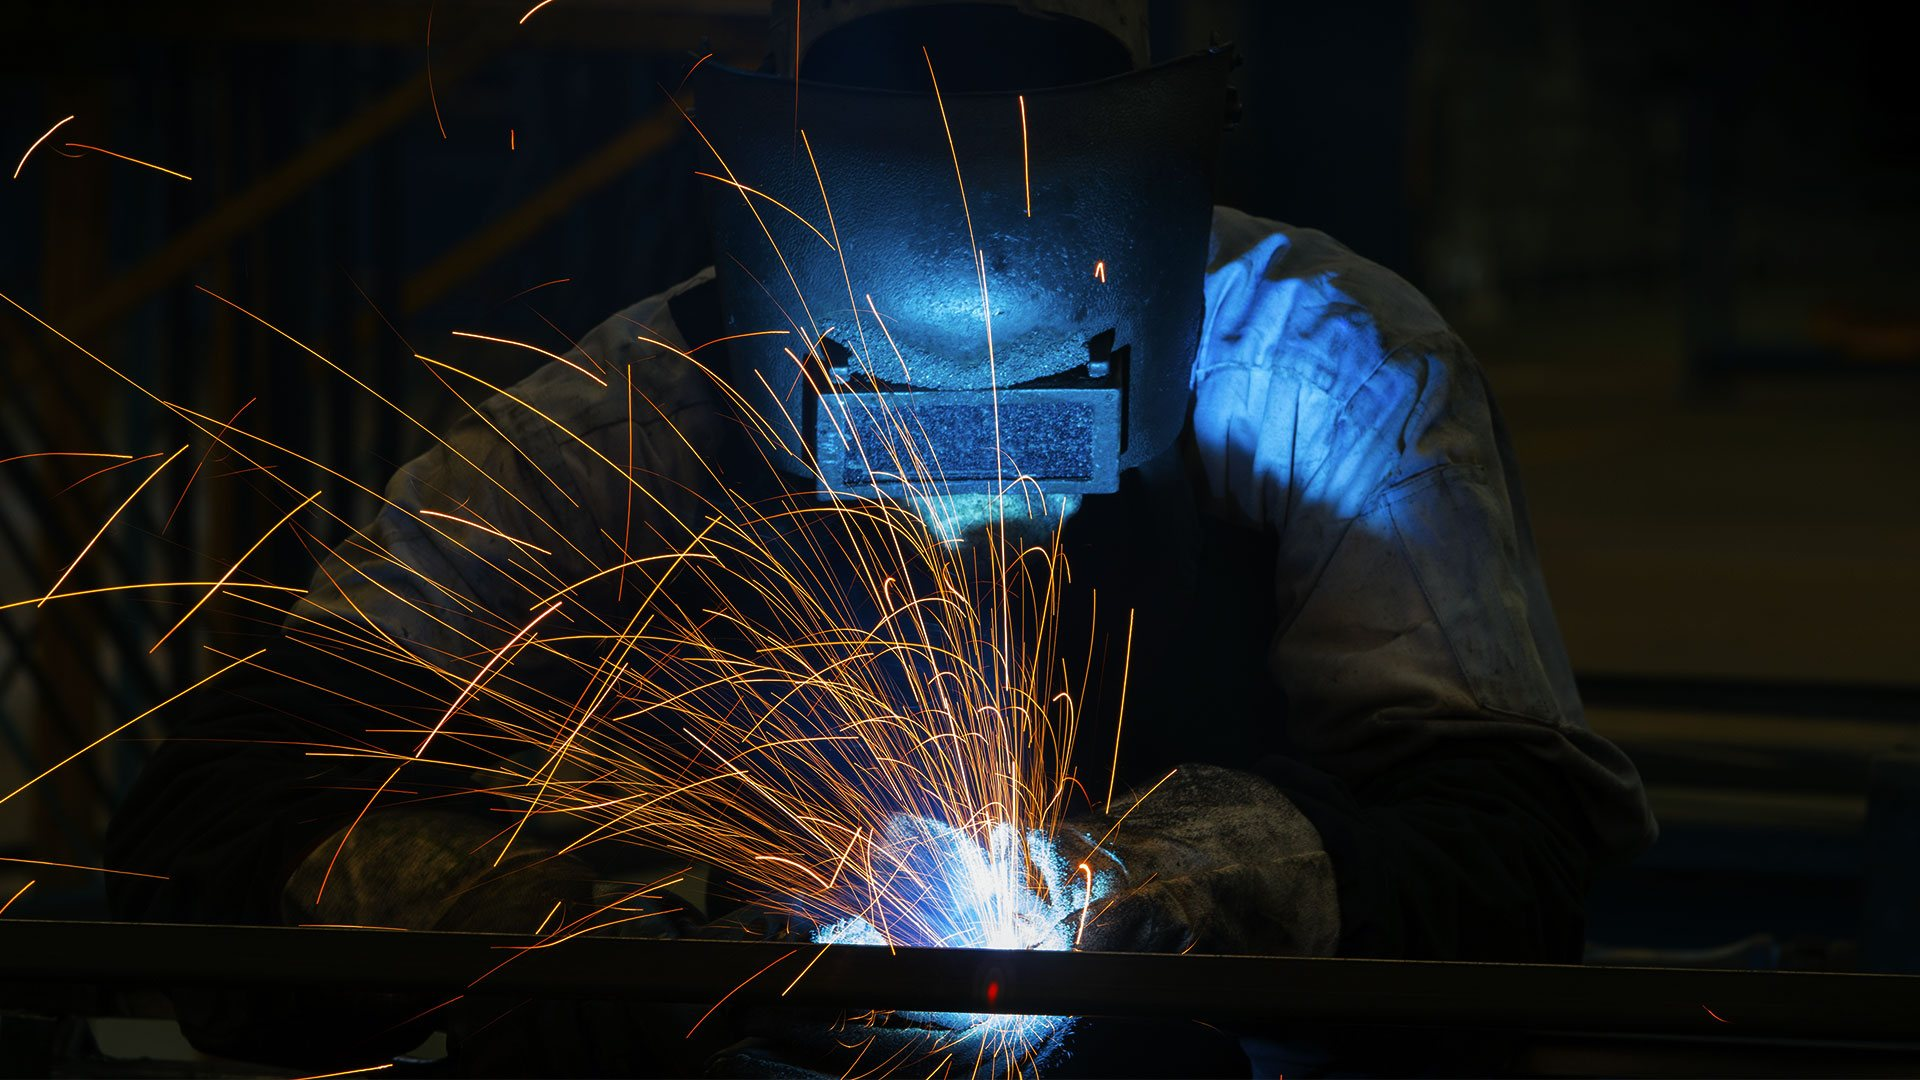 Vancouver Mobile Welding, Welding Shop and Metal Fabrication